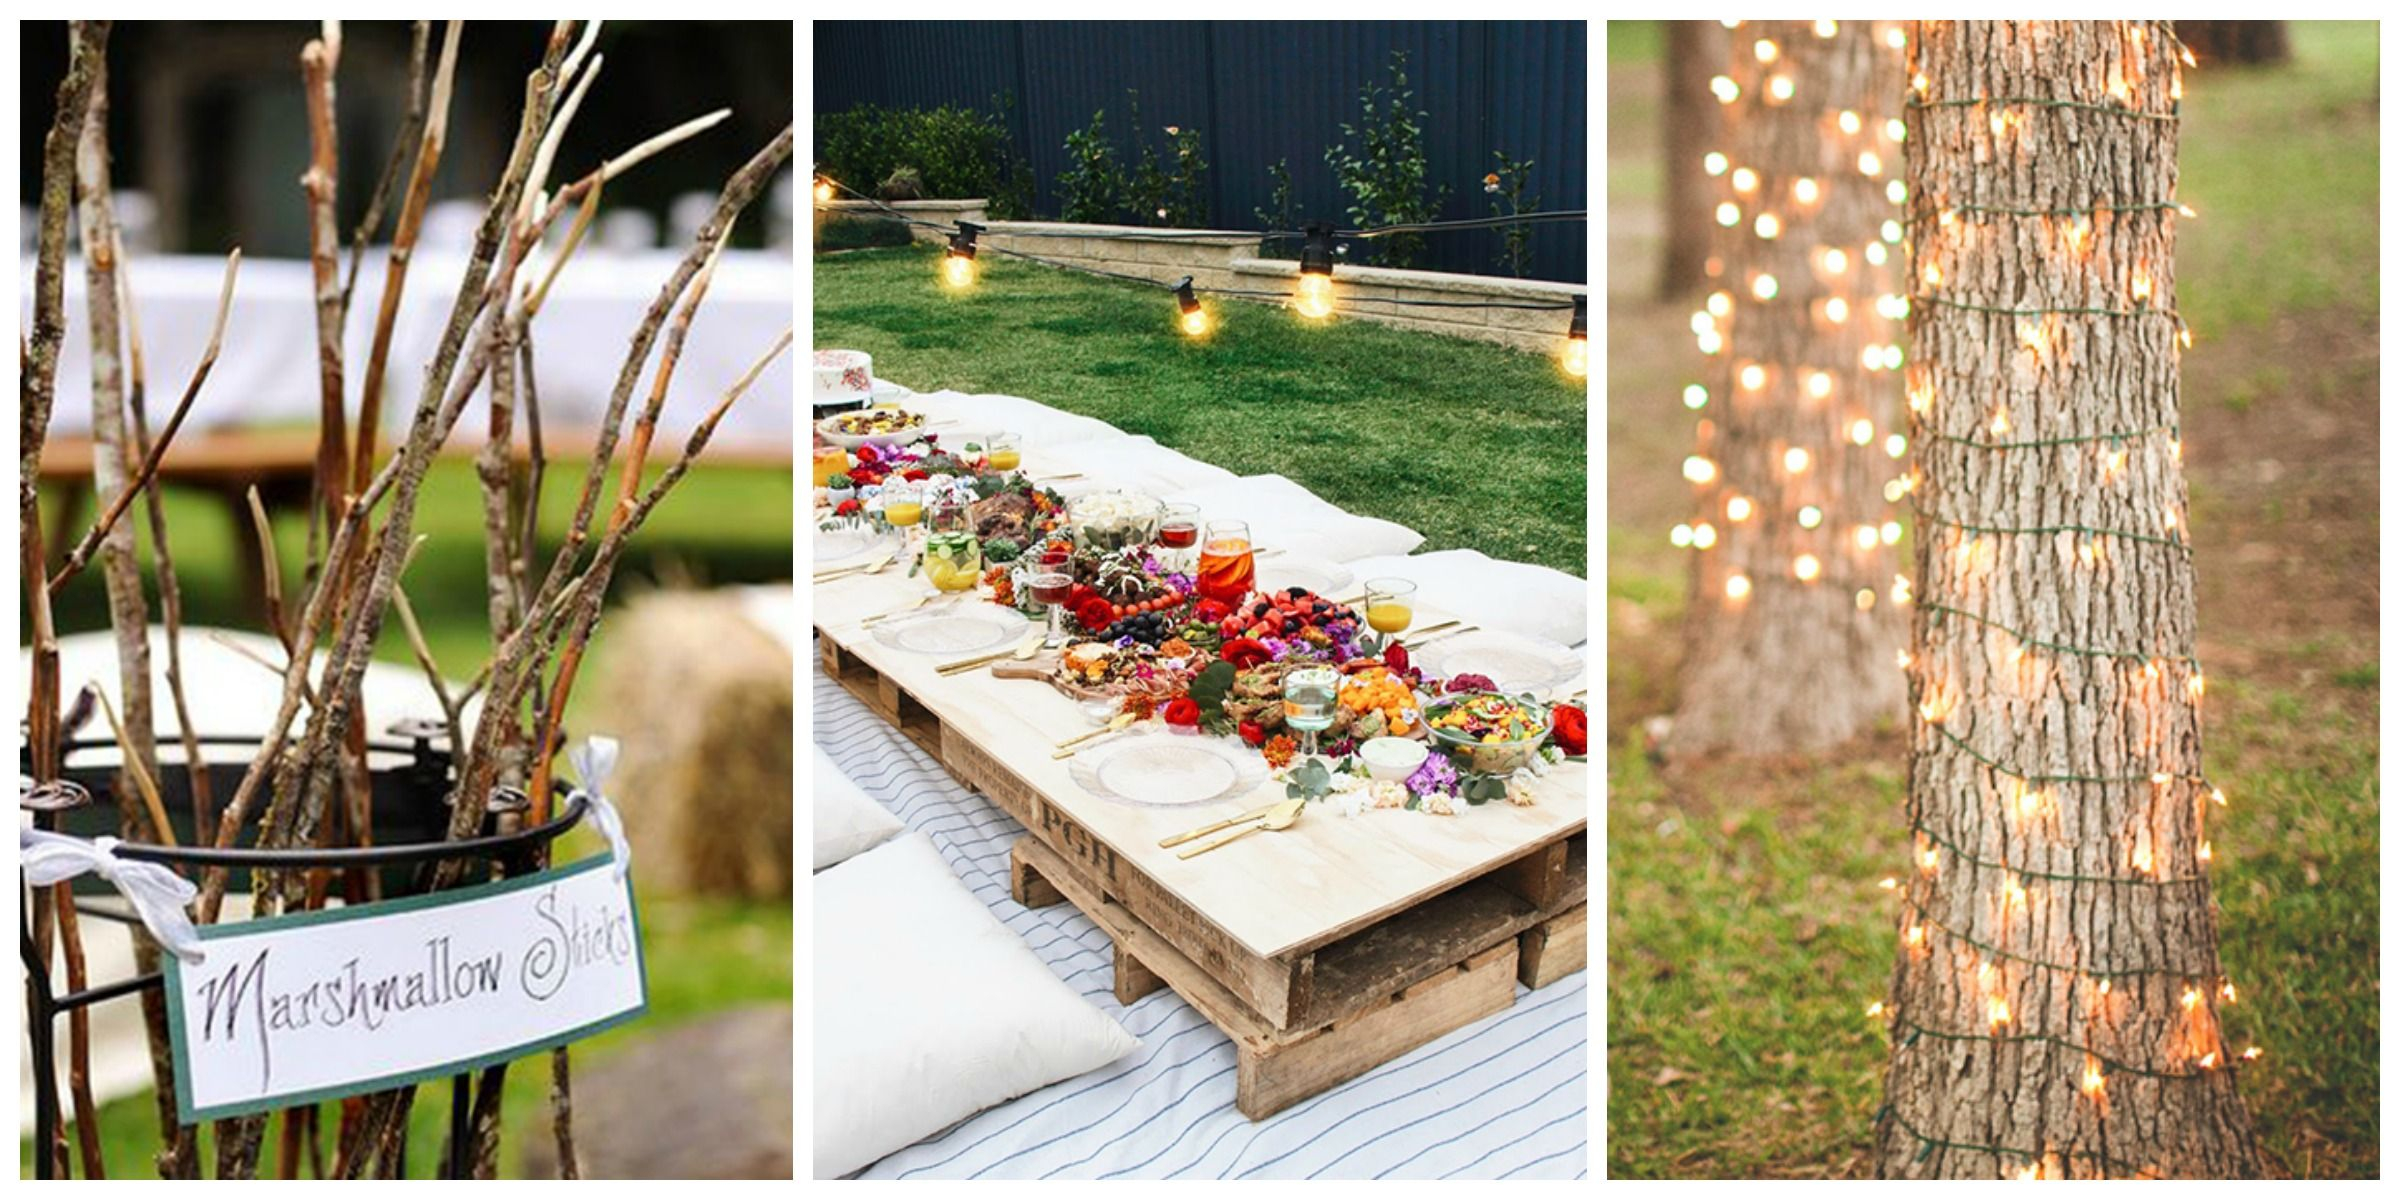 14 Best Backyard Party Ideas For Adults Summer with 10 Awesome Ideas How to Makeover Backyard Party Decorating Ideas